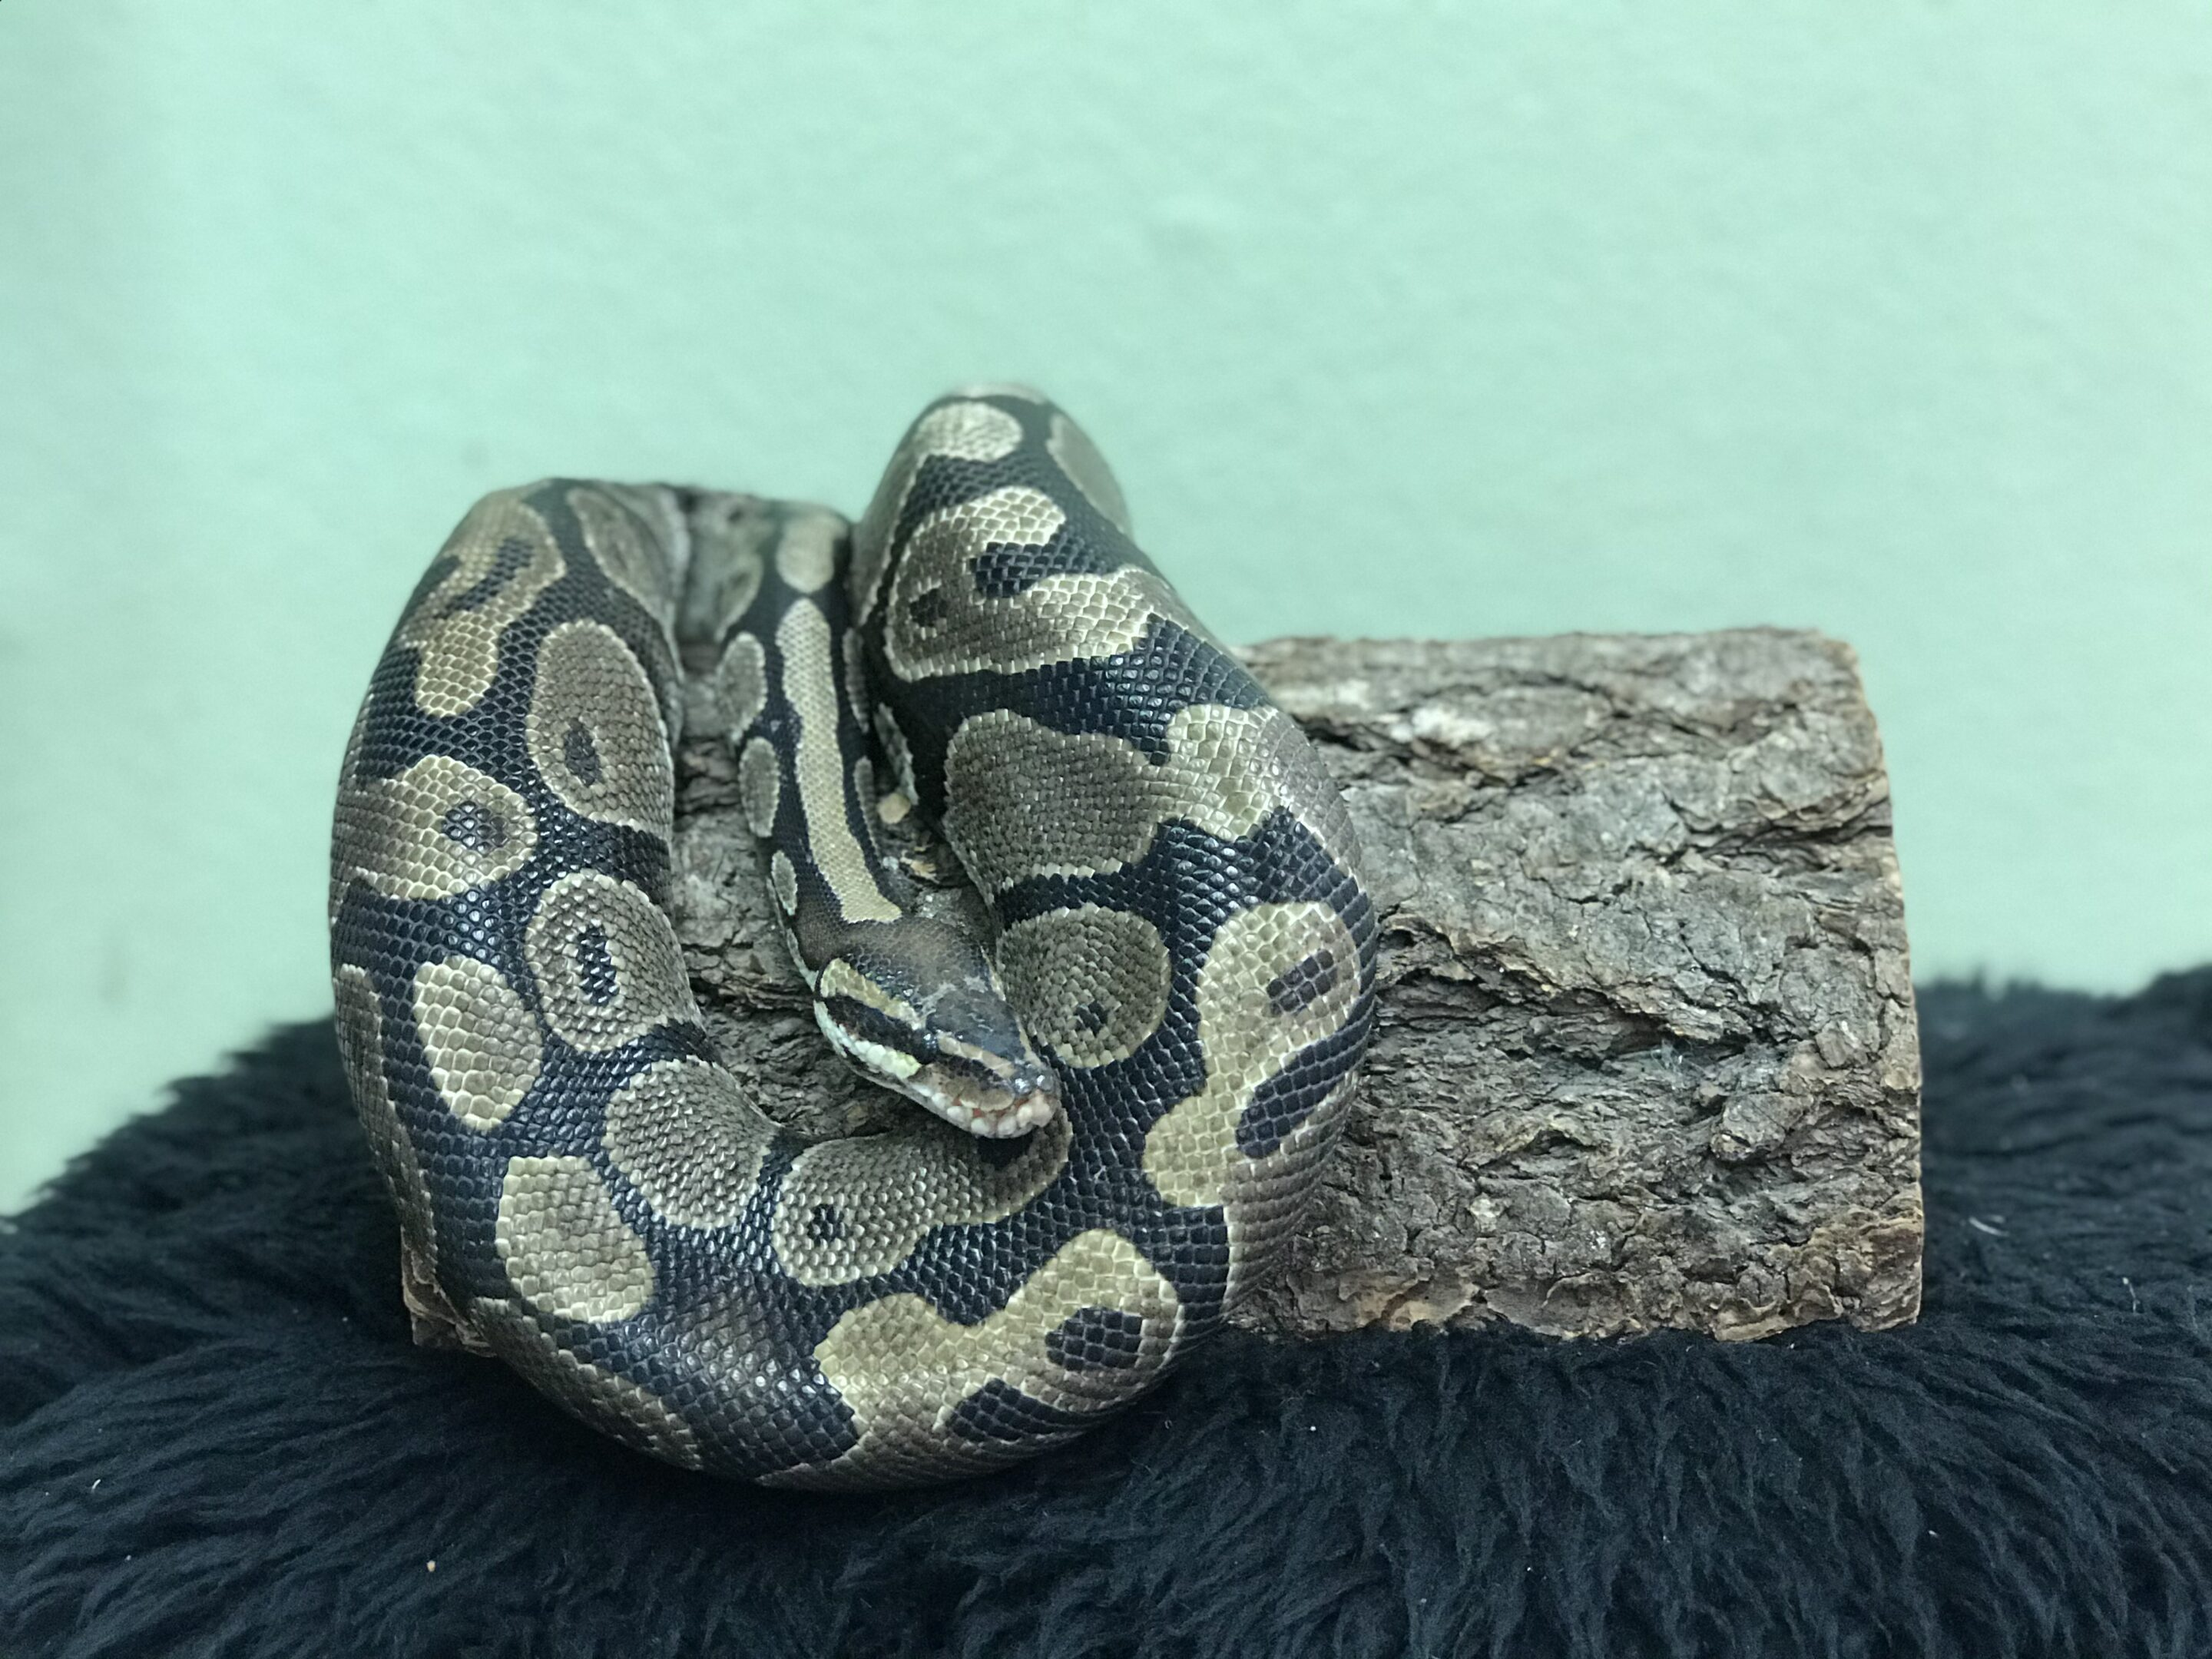 A ball python is draped over a log hide that sits on a black surface.